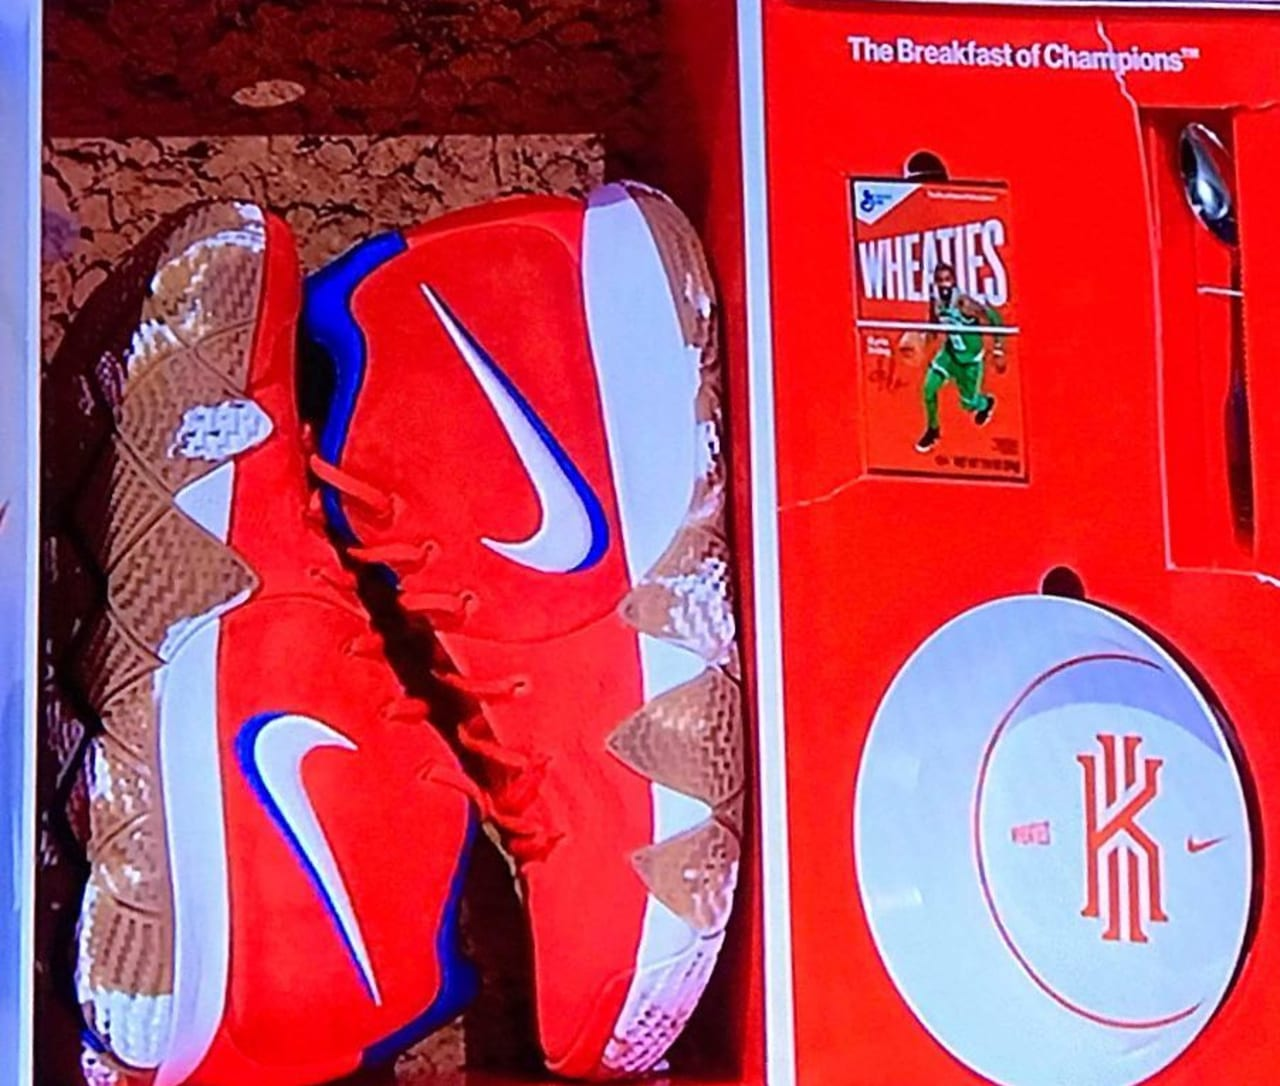 Nike Kyrie 4 'Wheaties' Limited to 100